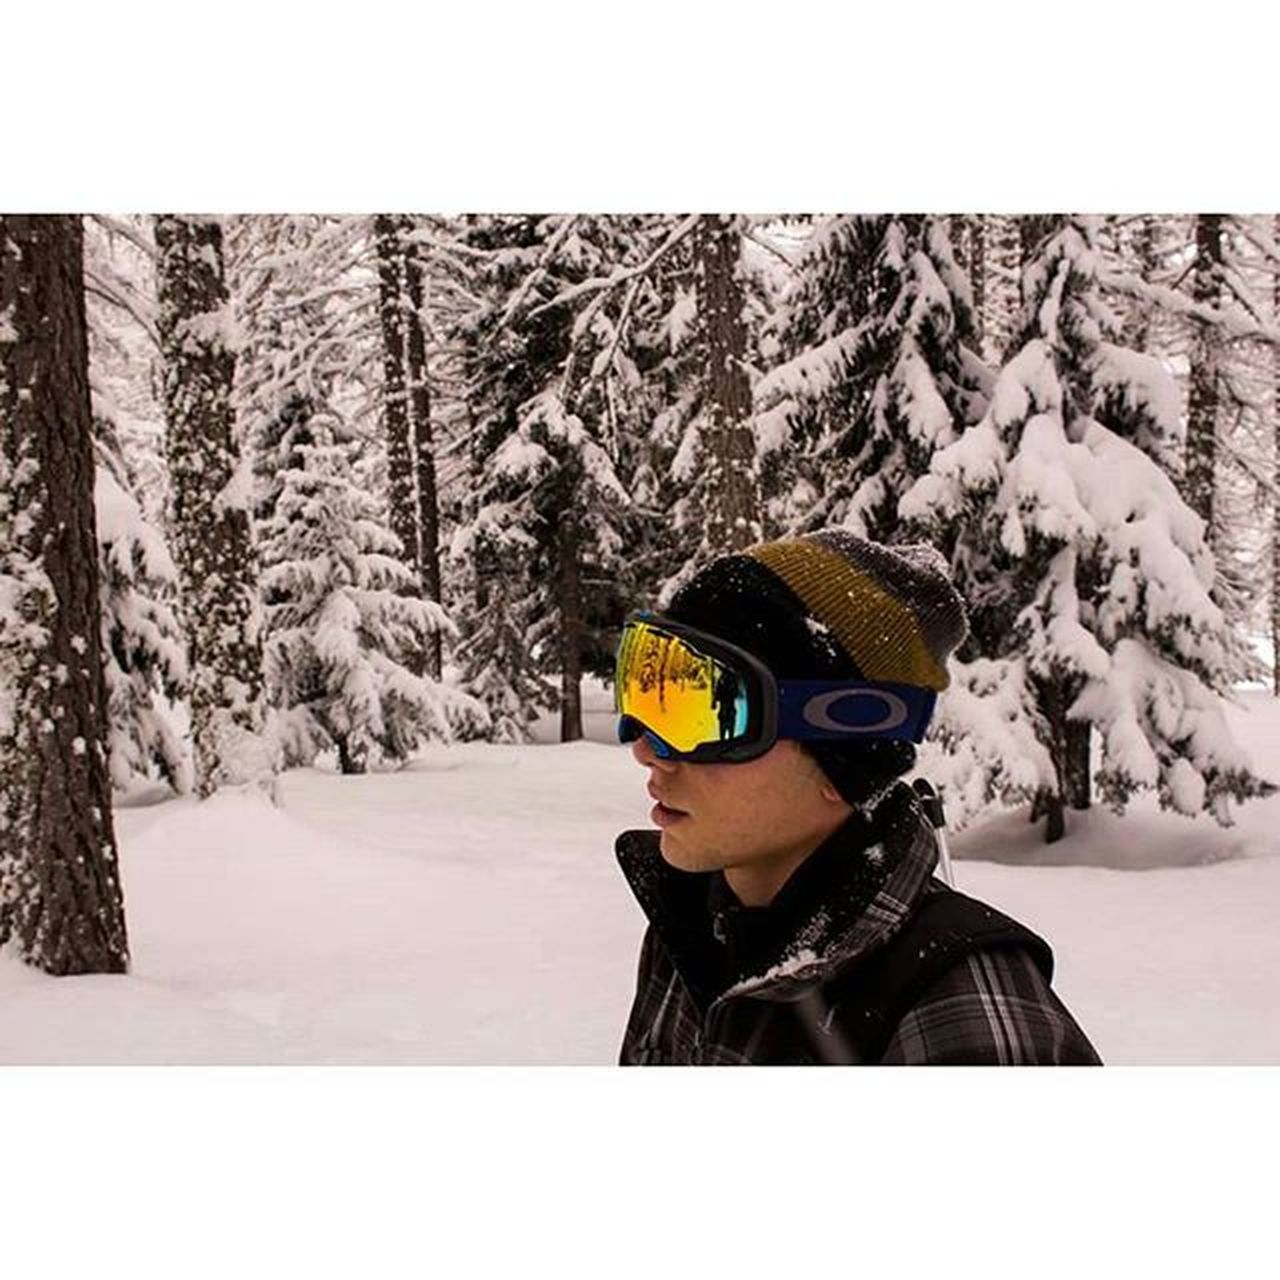 Ready for The season ❄ Winter Ready Readyforthesnow Snow Ski Snowboard Oakley Goggles Color Colorful Gold White Wood Armada Salomon Gopro Happines Freedom Soul